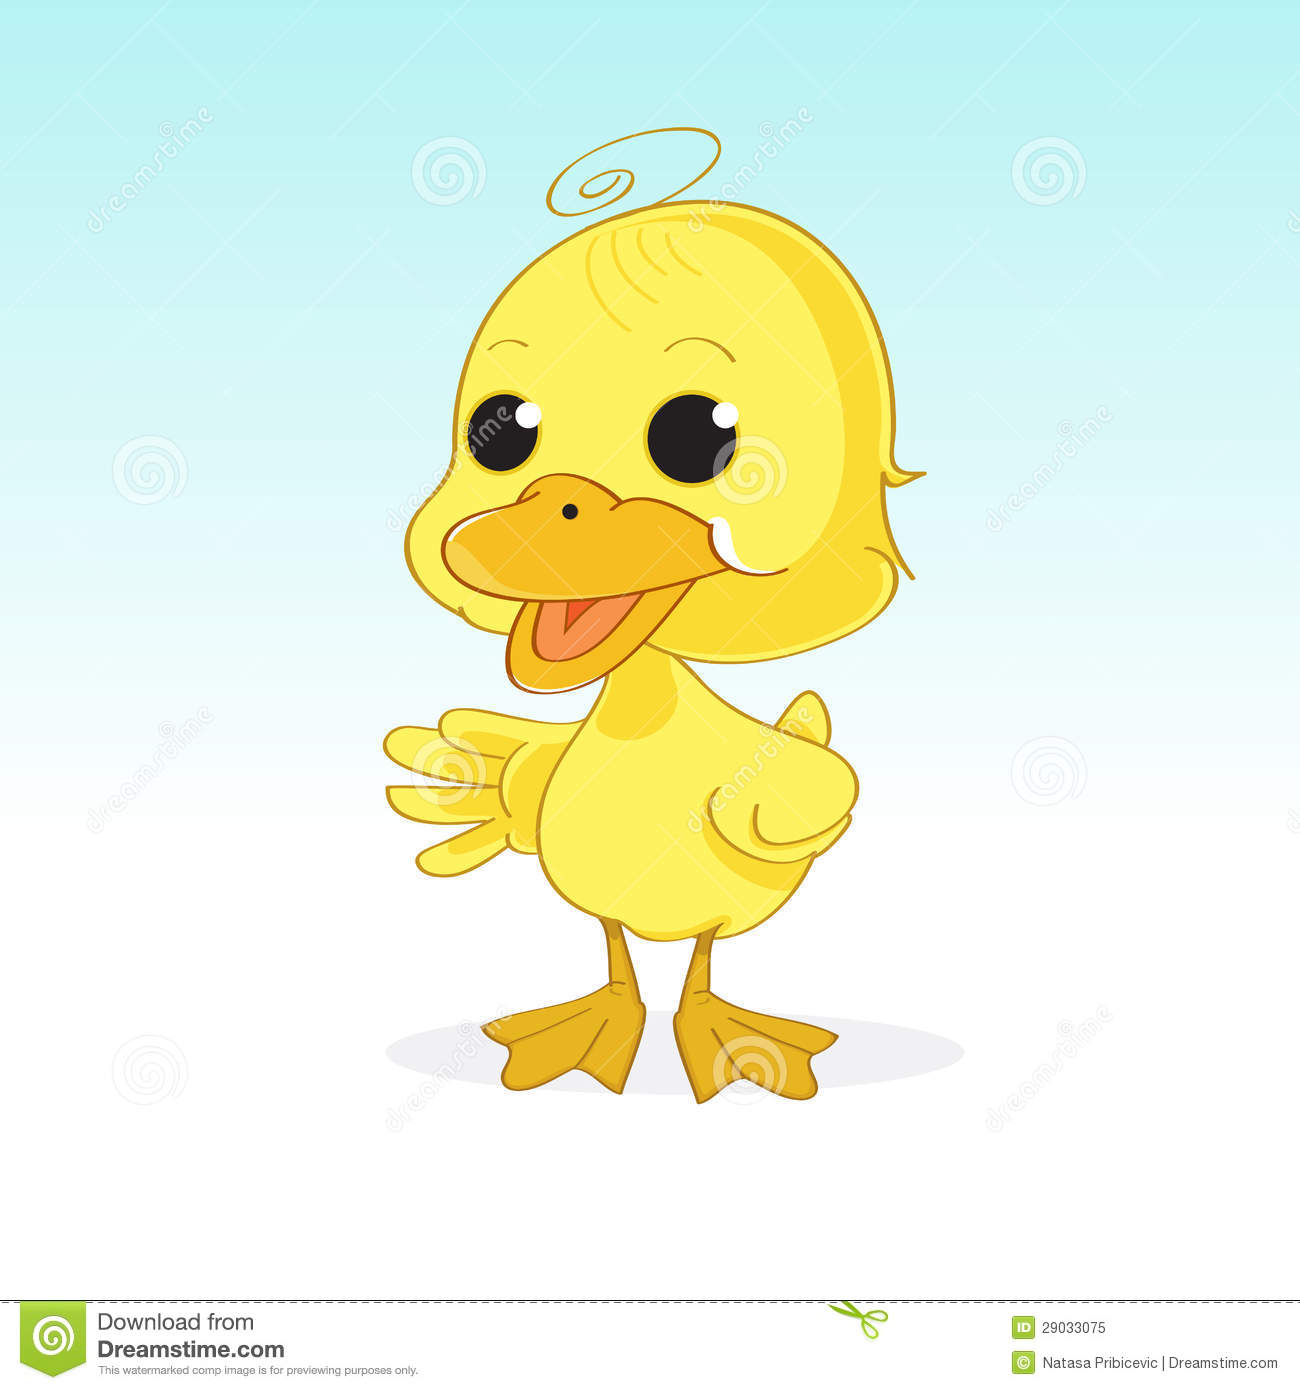 Cute little duck - photo#23